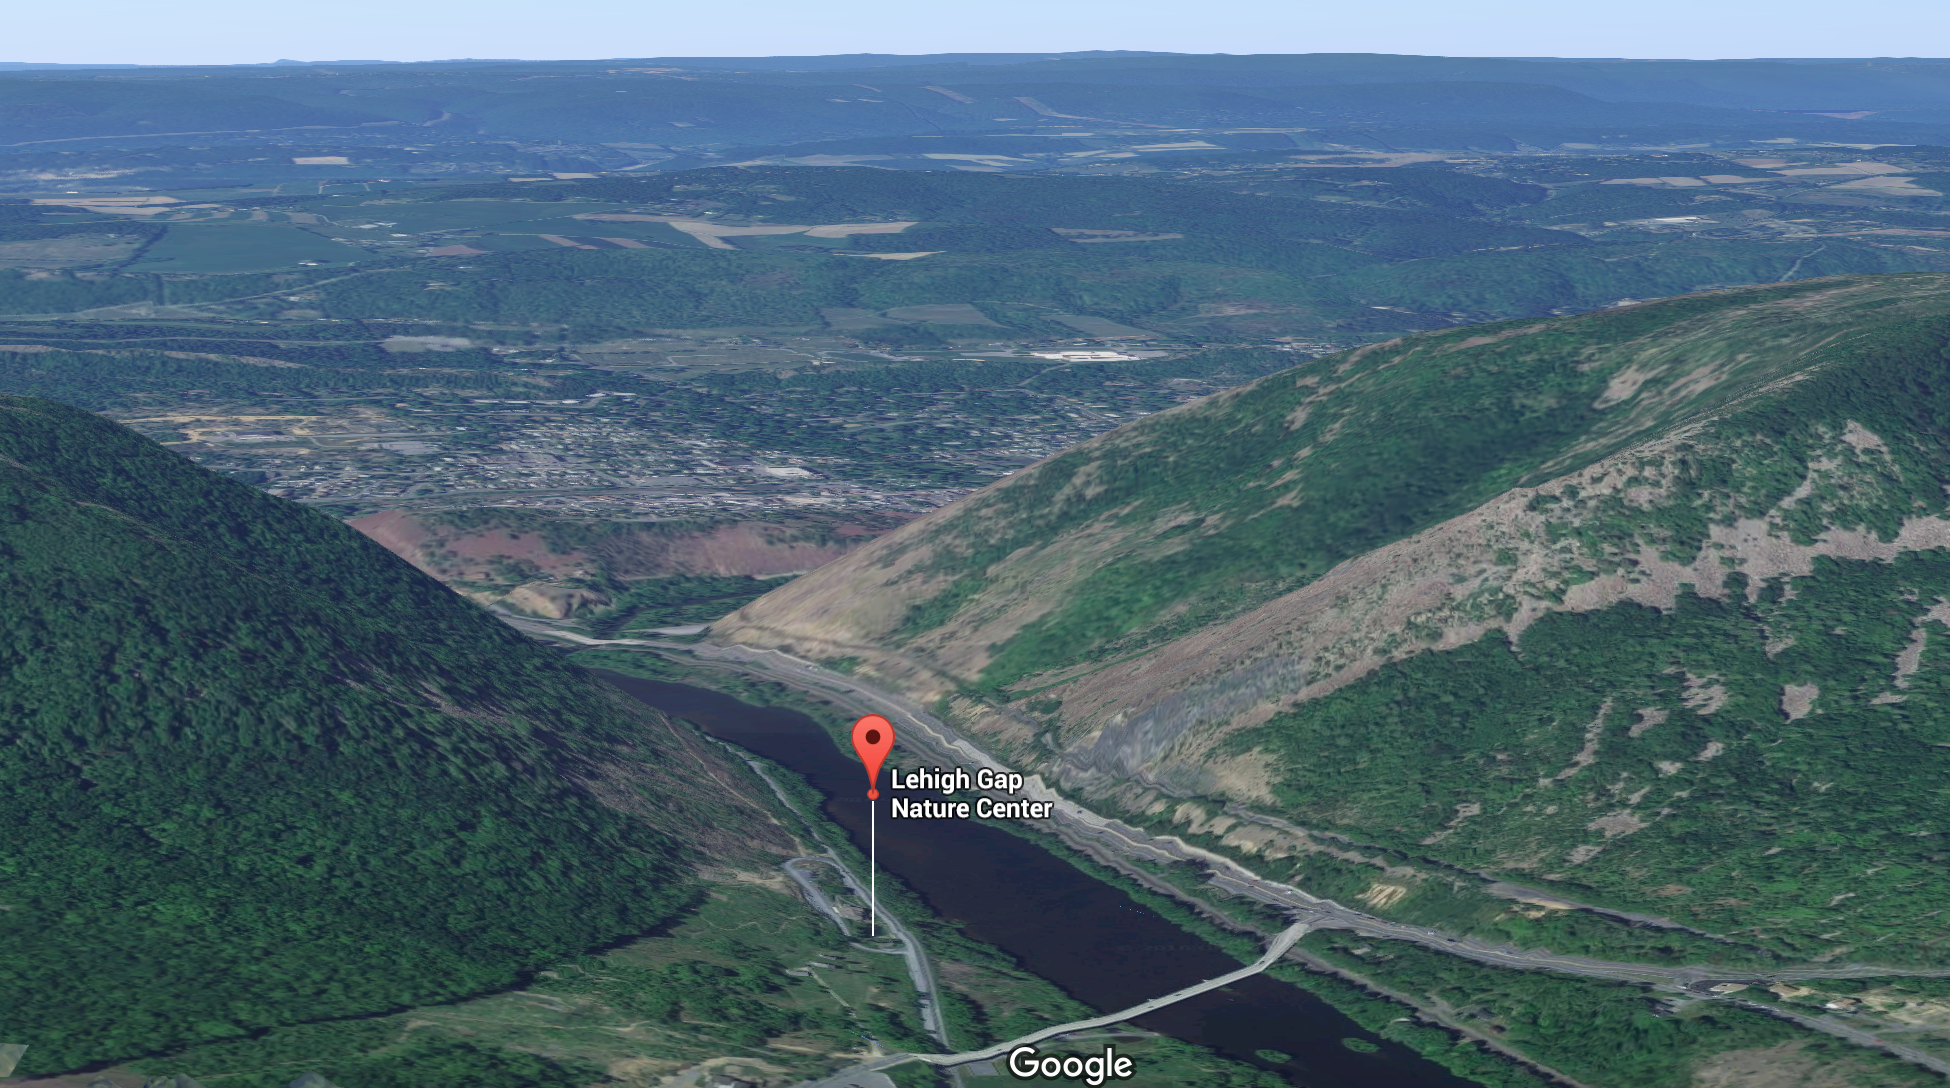 3D map of Lehigh Gap Nature Center's location in Lehigh Gap.